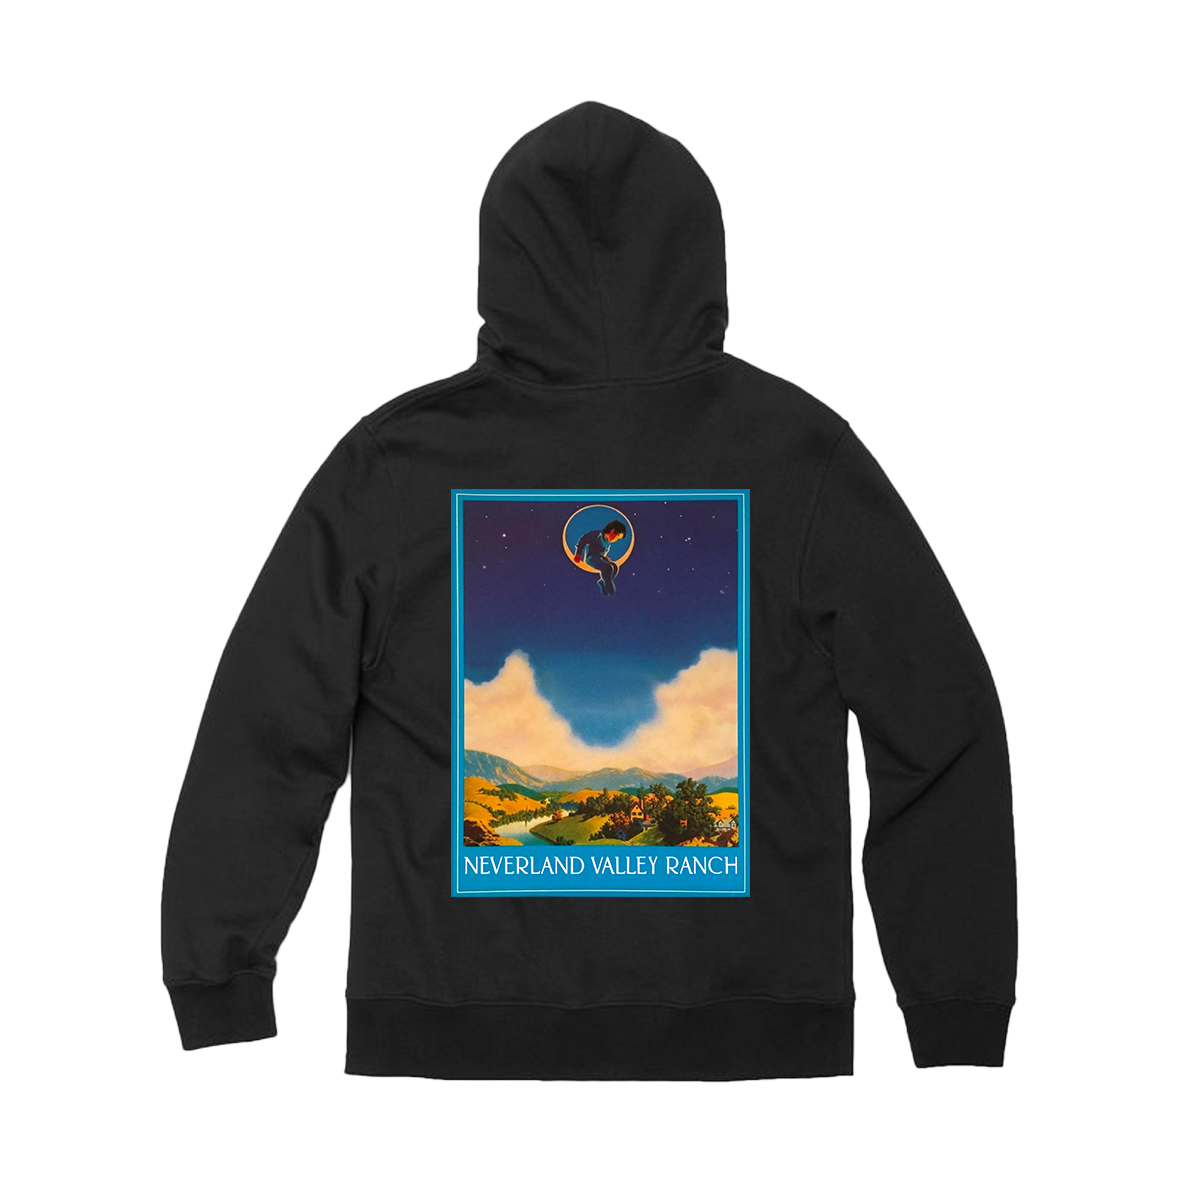 Neverland Valley Ranch™ Black Pullover Hoodie